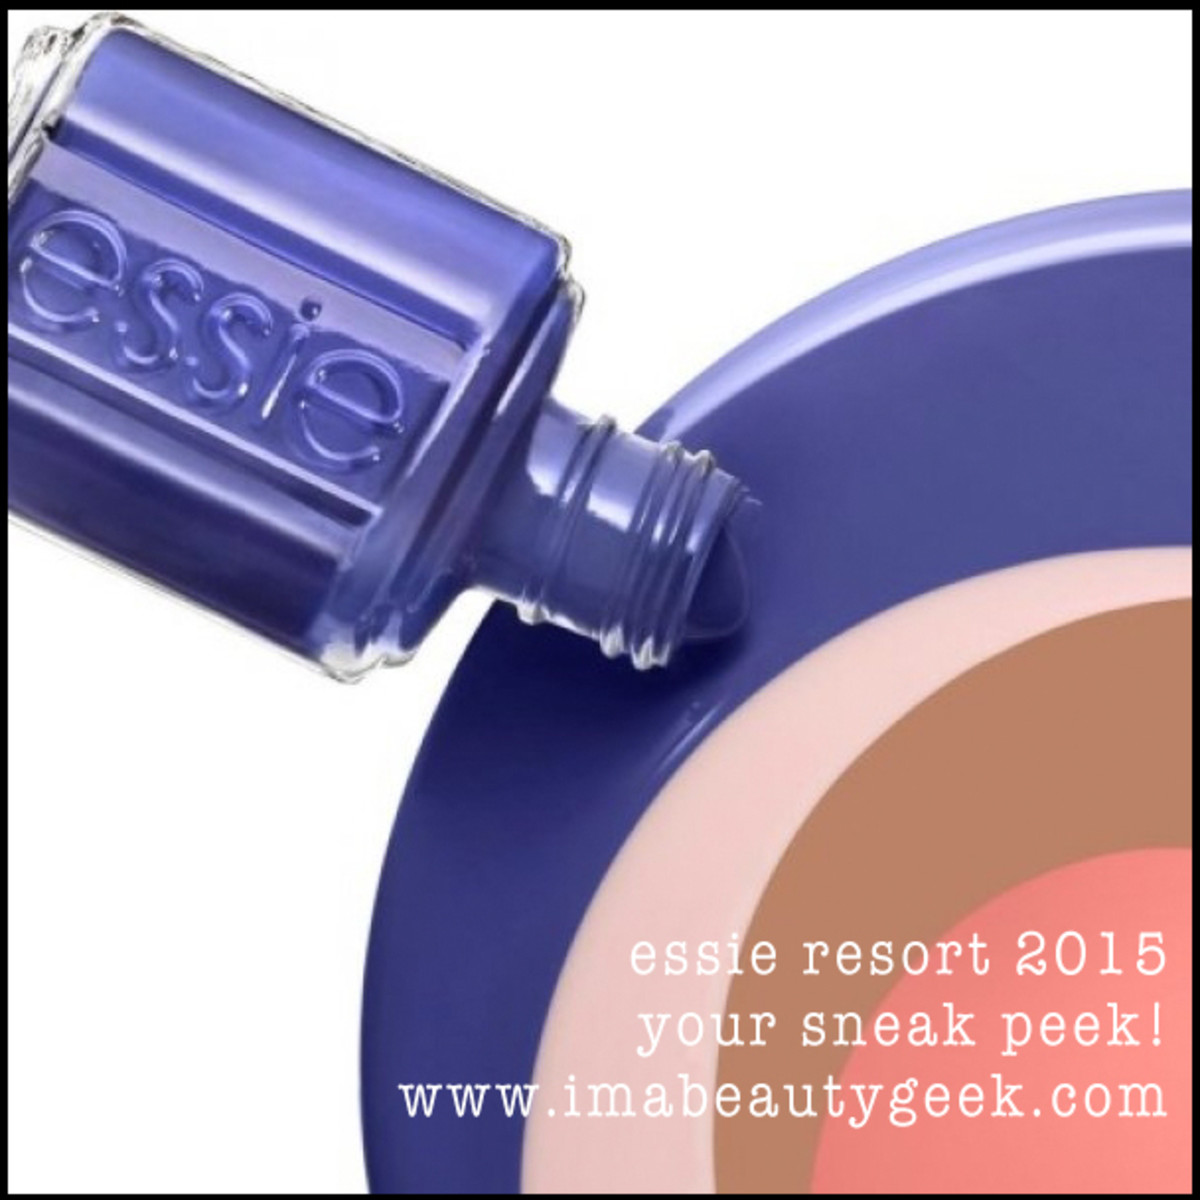 Essie Resort 2015 Sneak Peek PuddlePic Beautygeeks